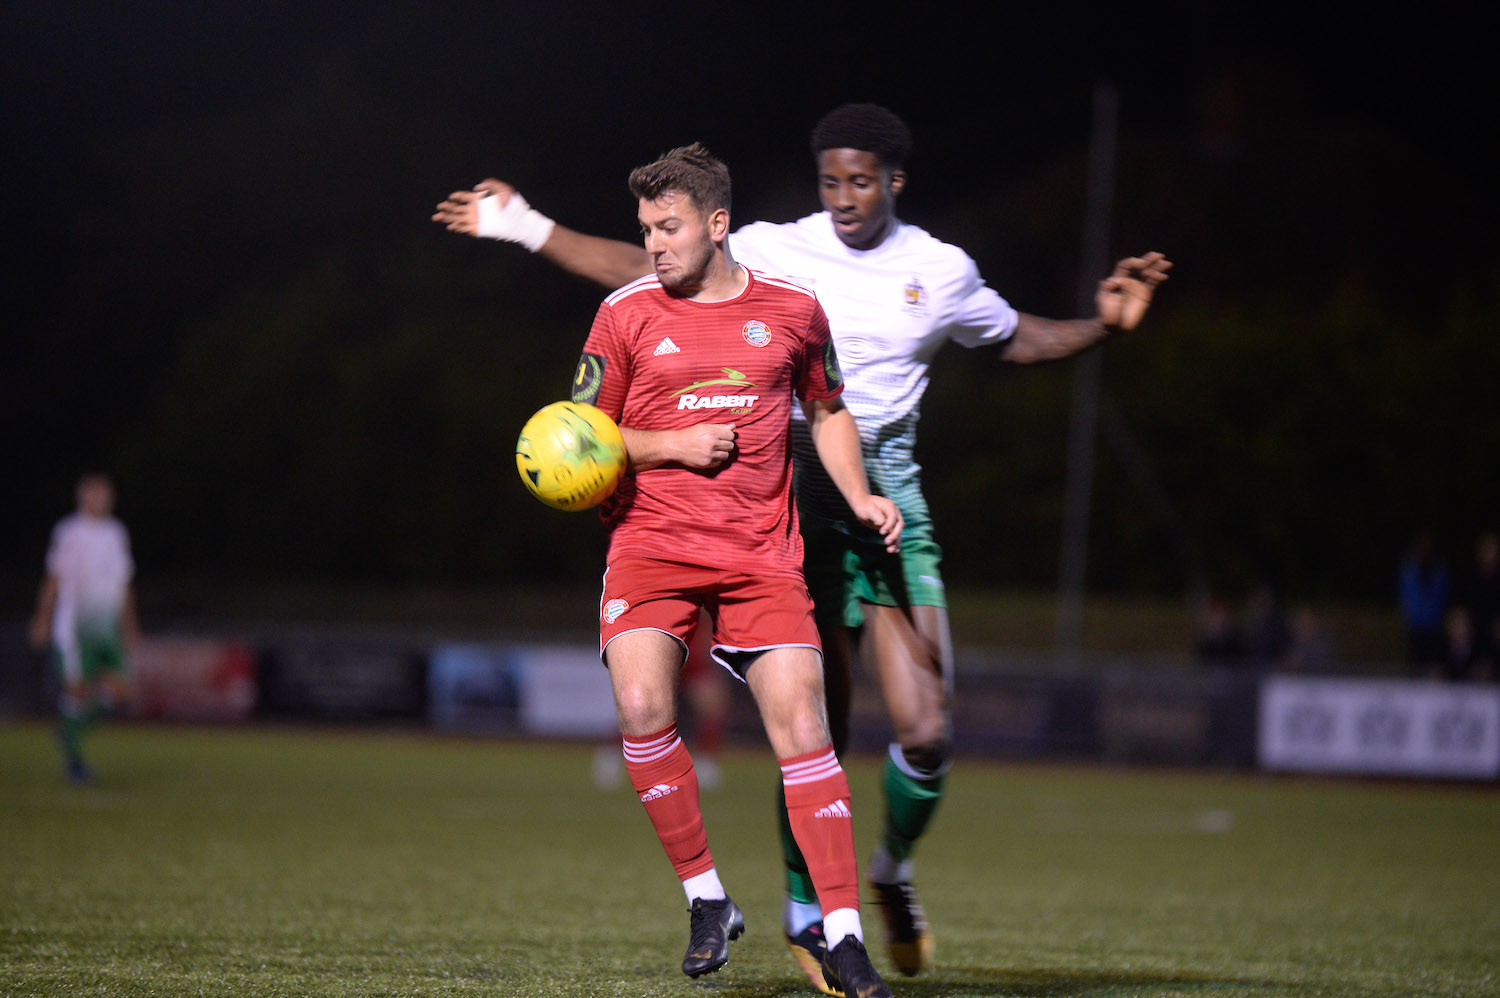 Read the full article - GALLERY | 19/20: St. Albans City [H] – FA Cup [Replay]